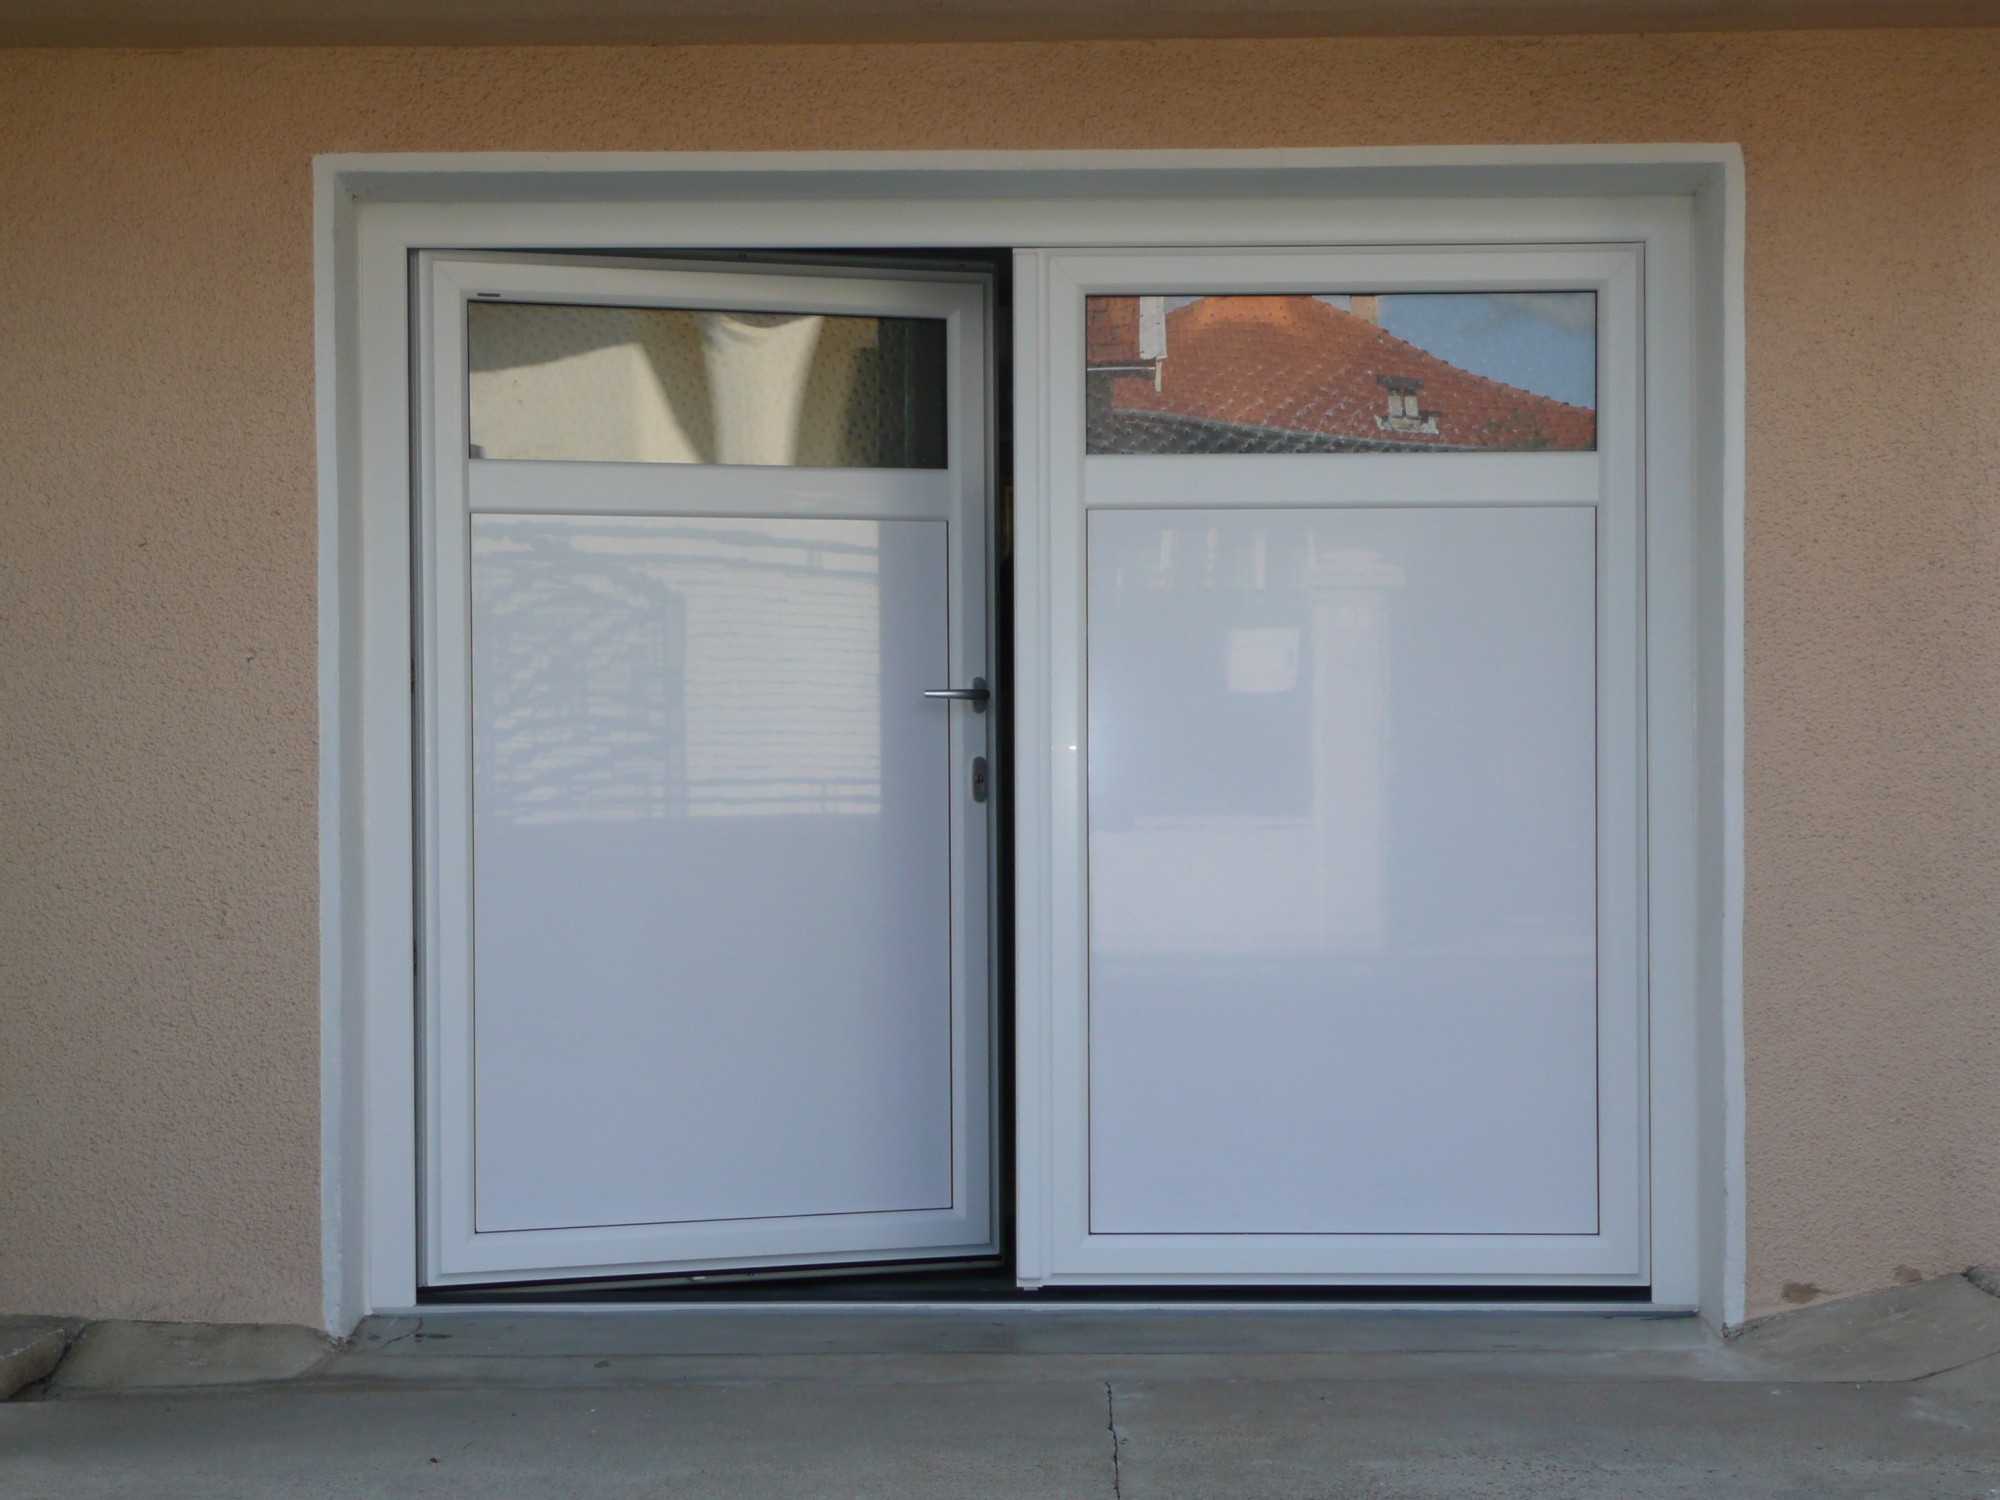 Installateur de portes de garage battantes isol es for Monter porte de garage